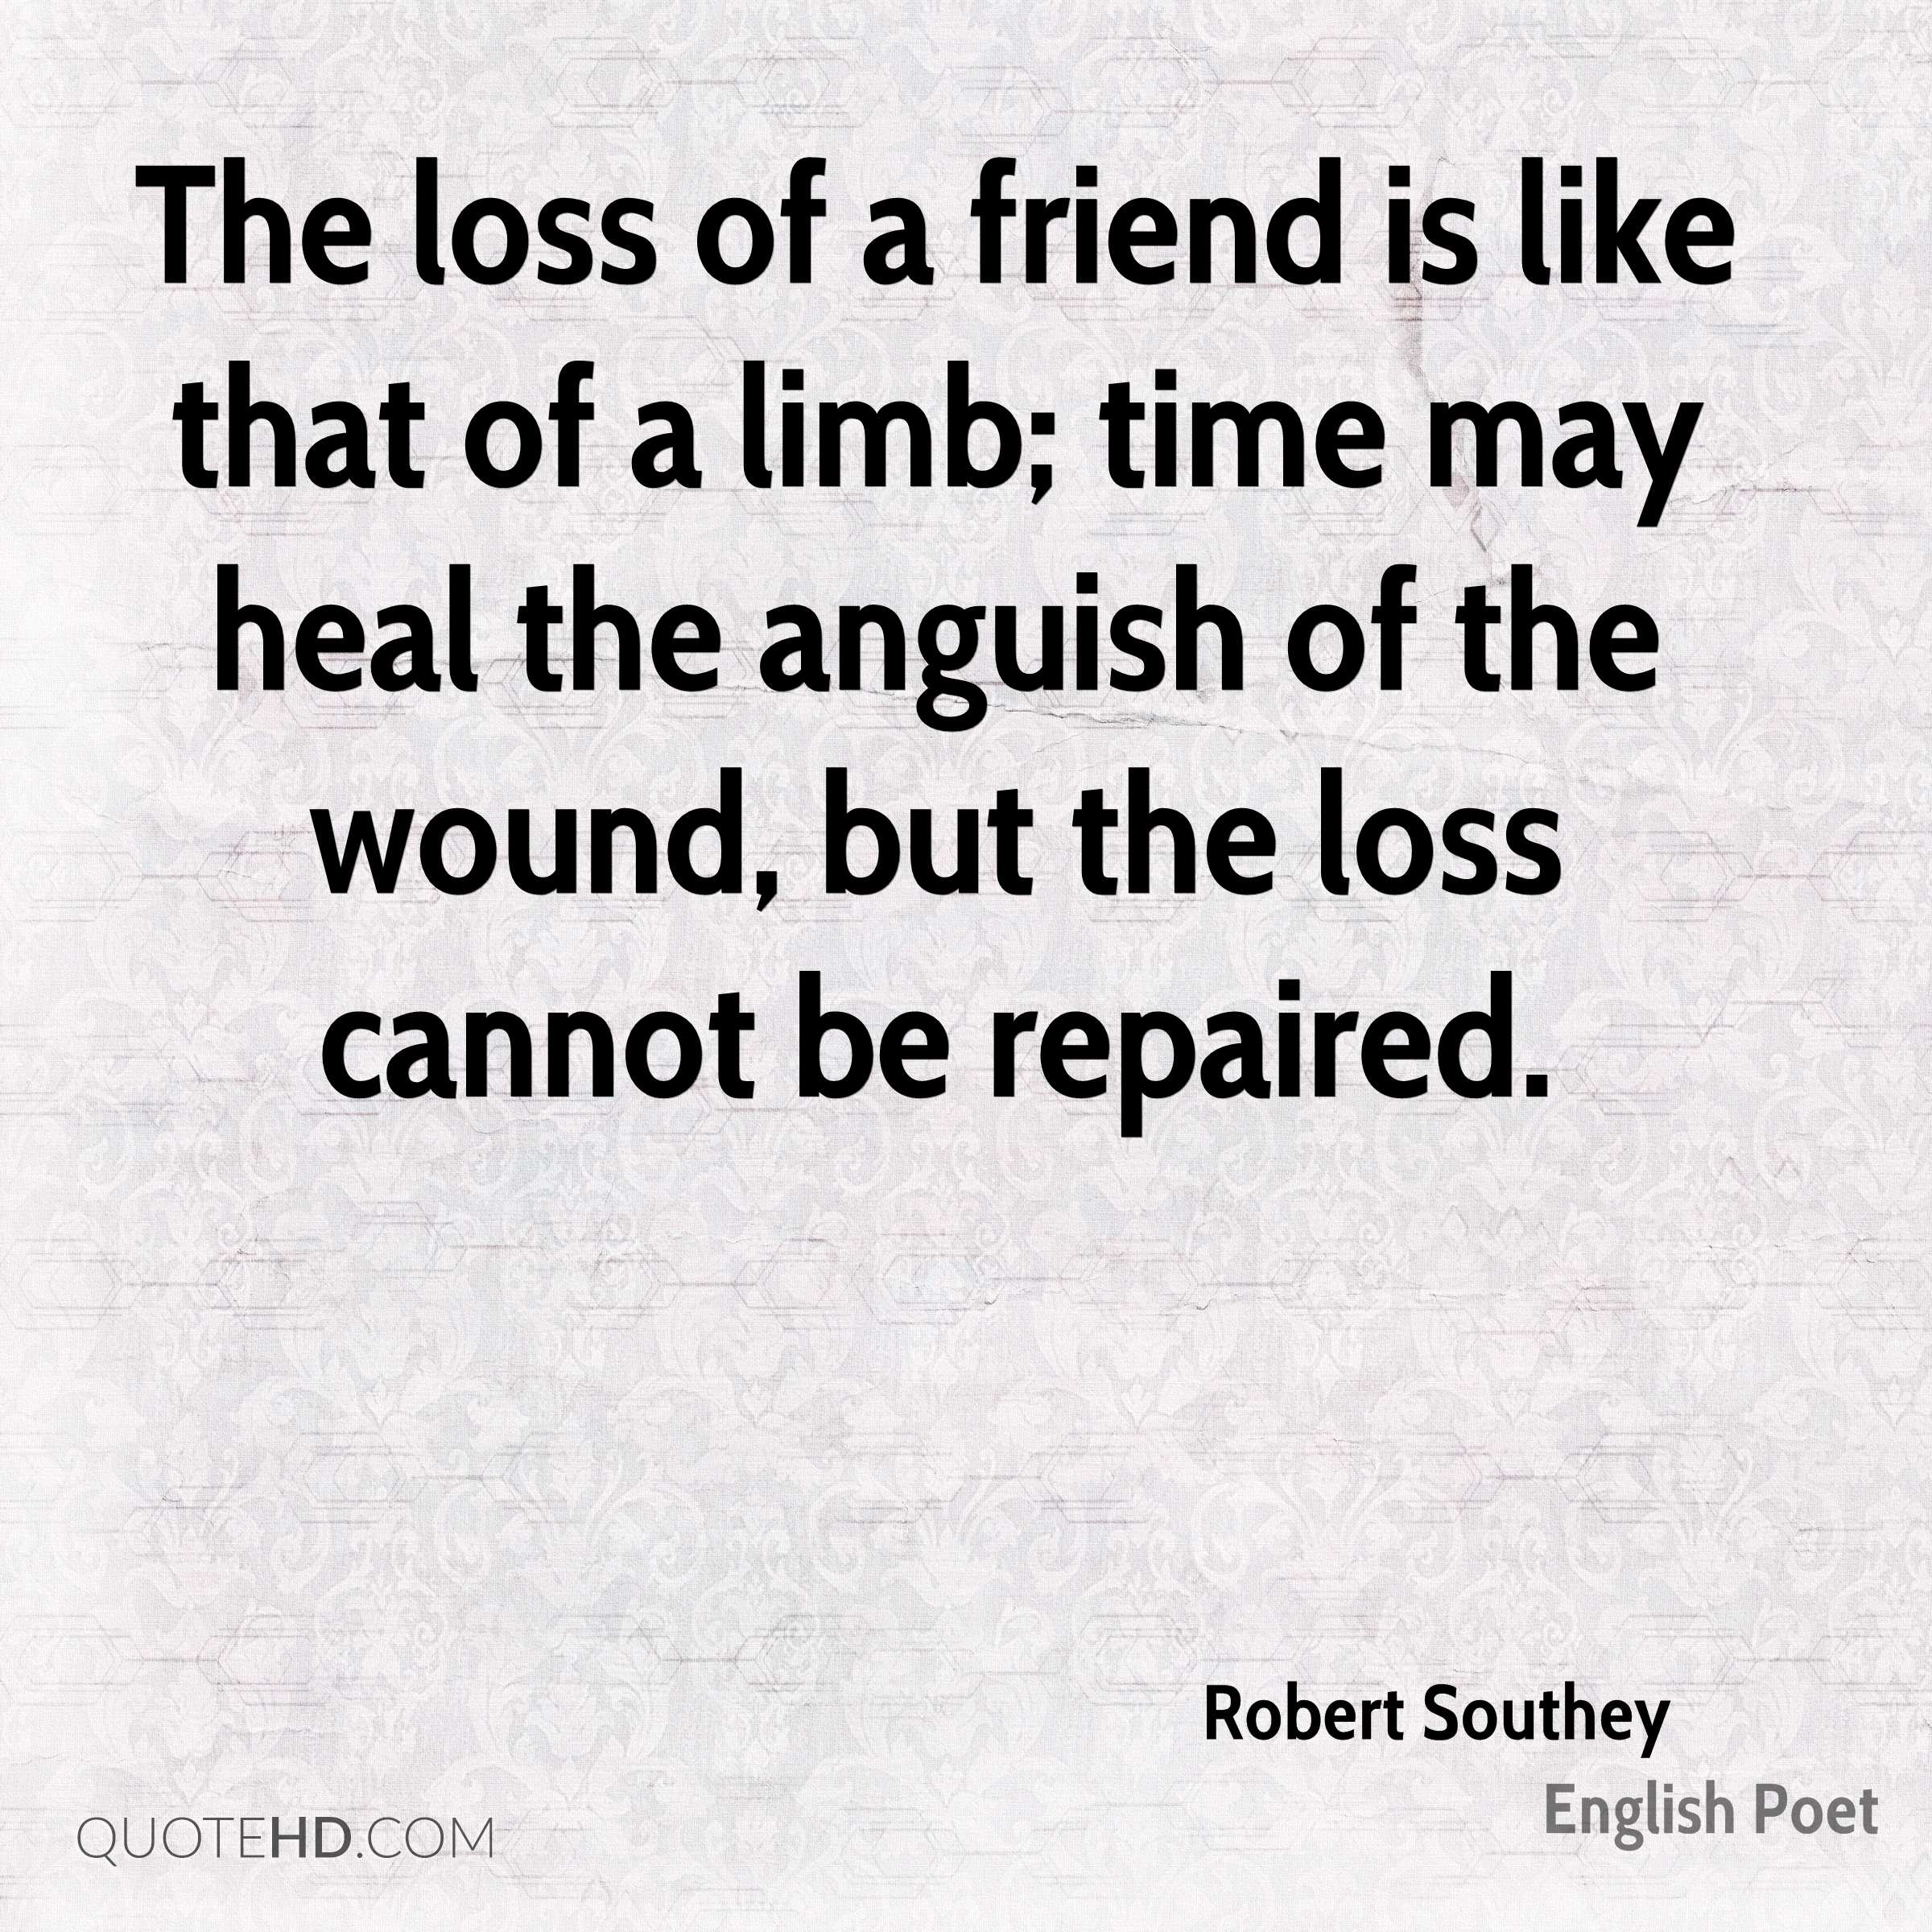 The loss of a friend is like that of a limb; time may heal the anguish of the wound, but the loss cannot be repaired.